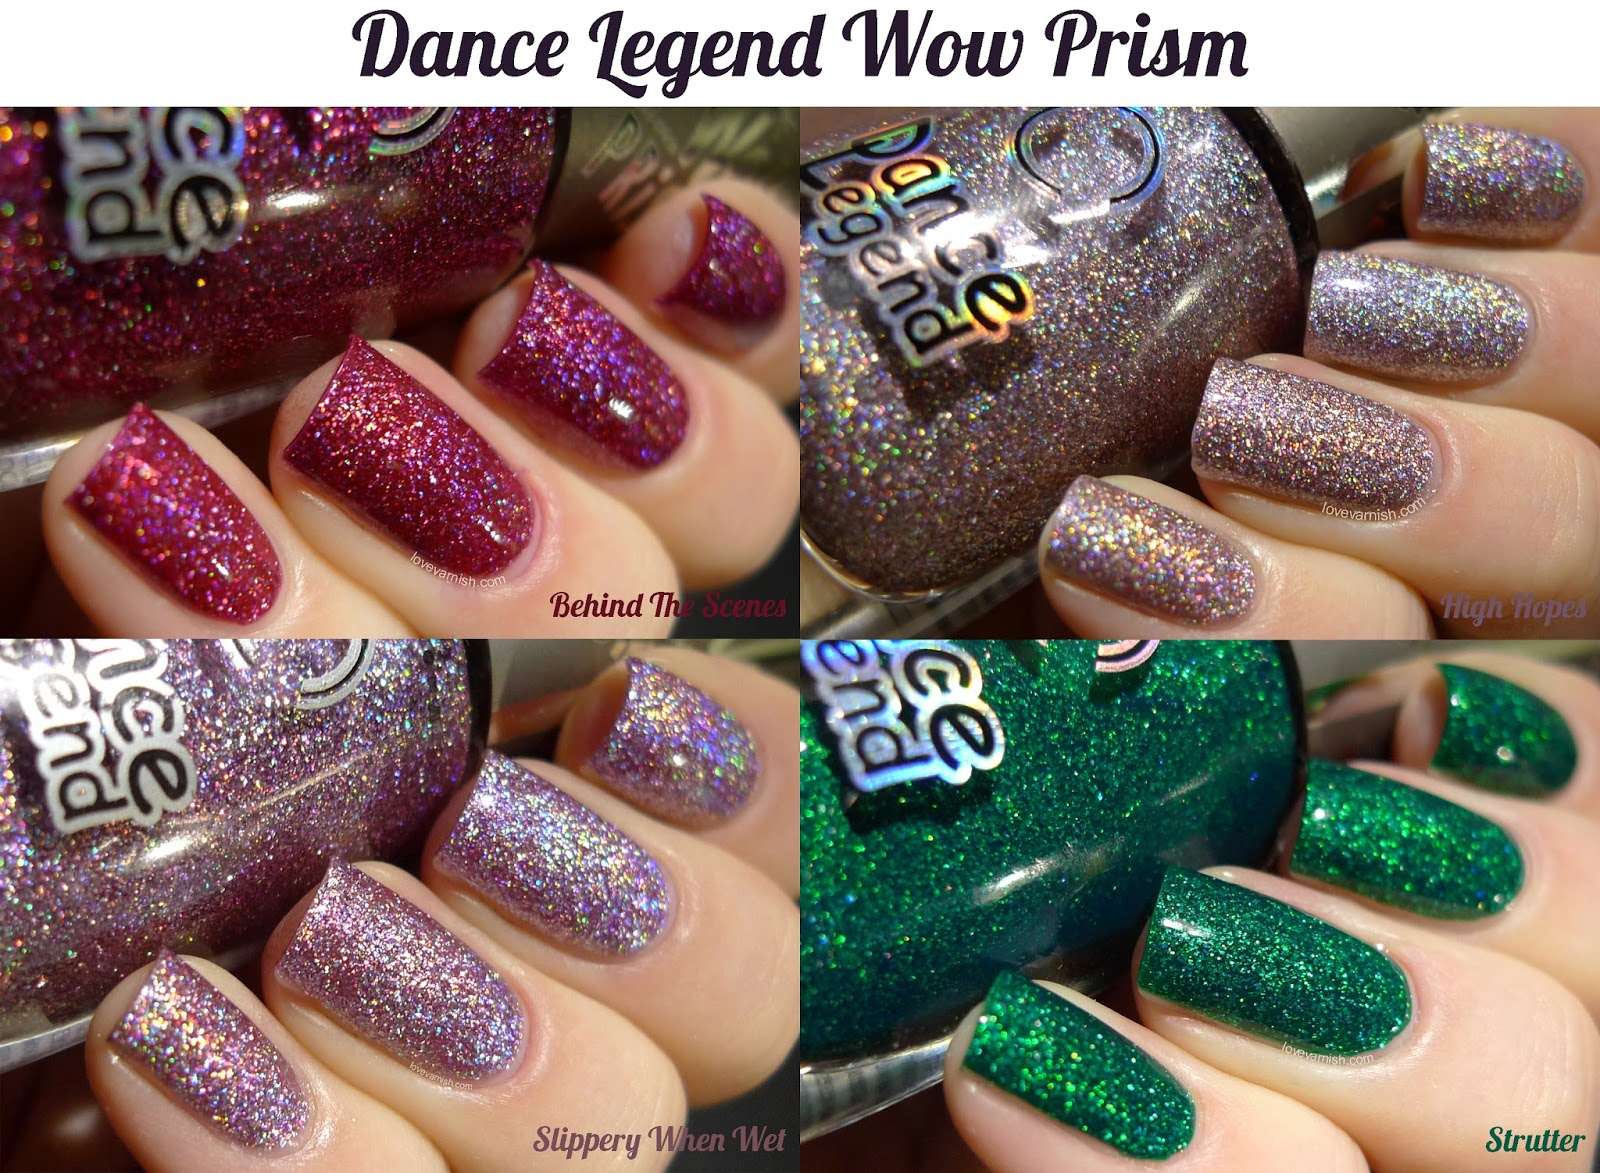 Dance Legend Wow Prism 4 shades